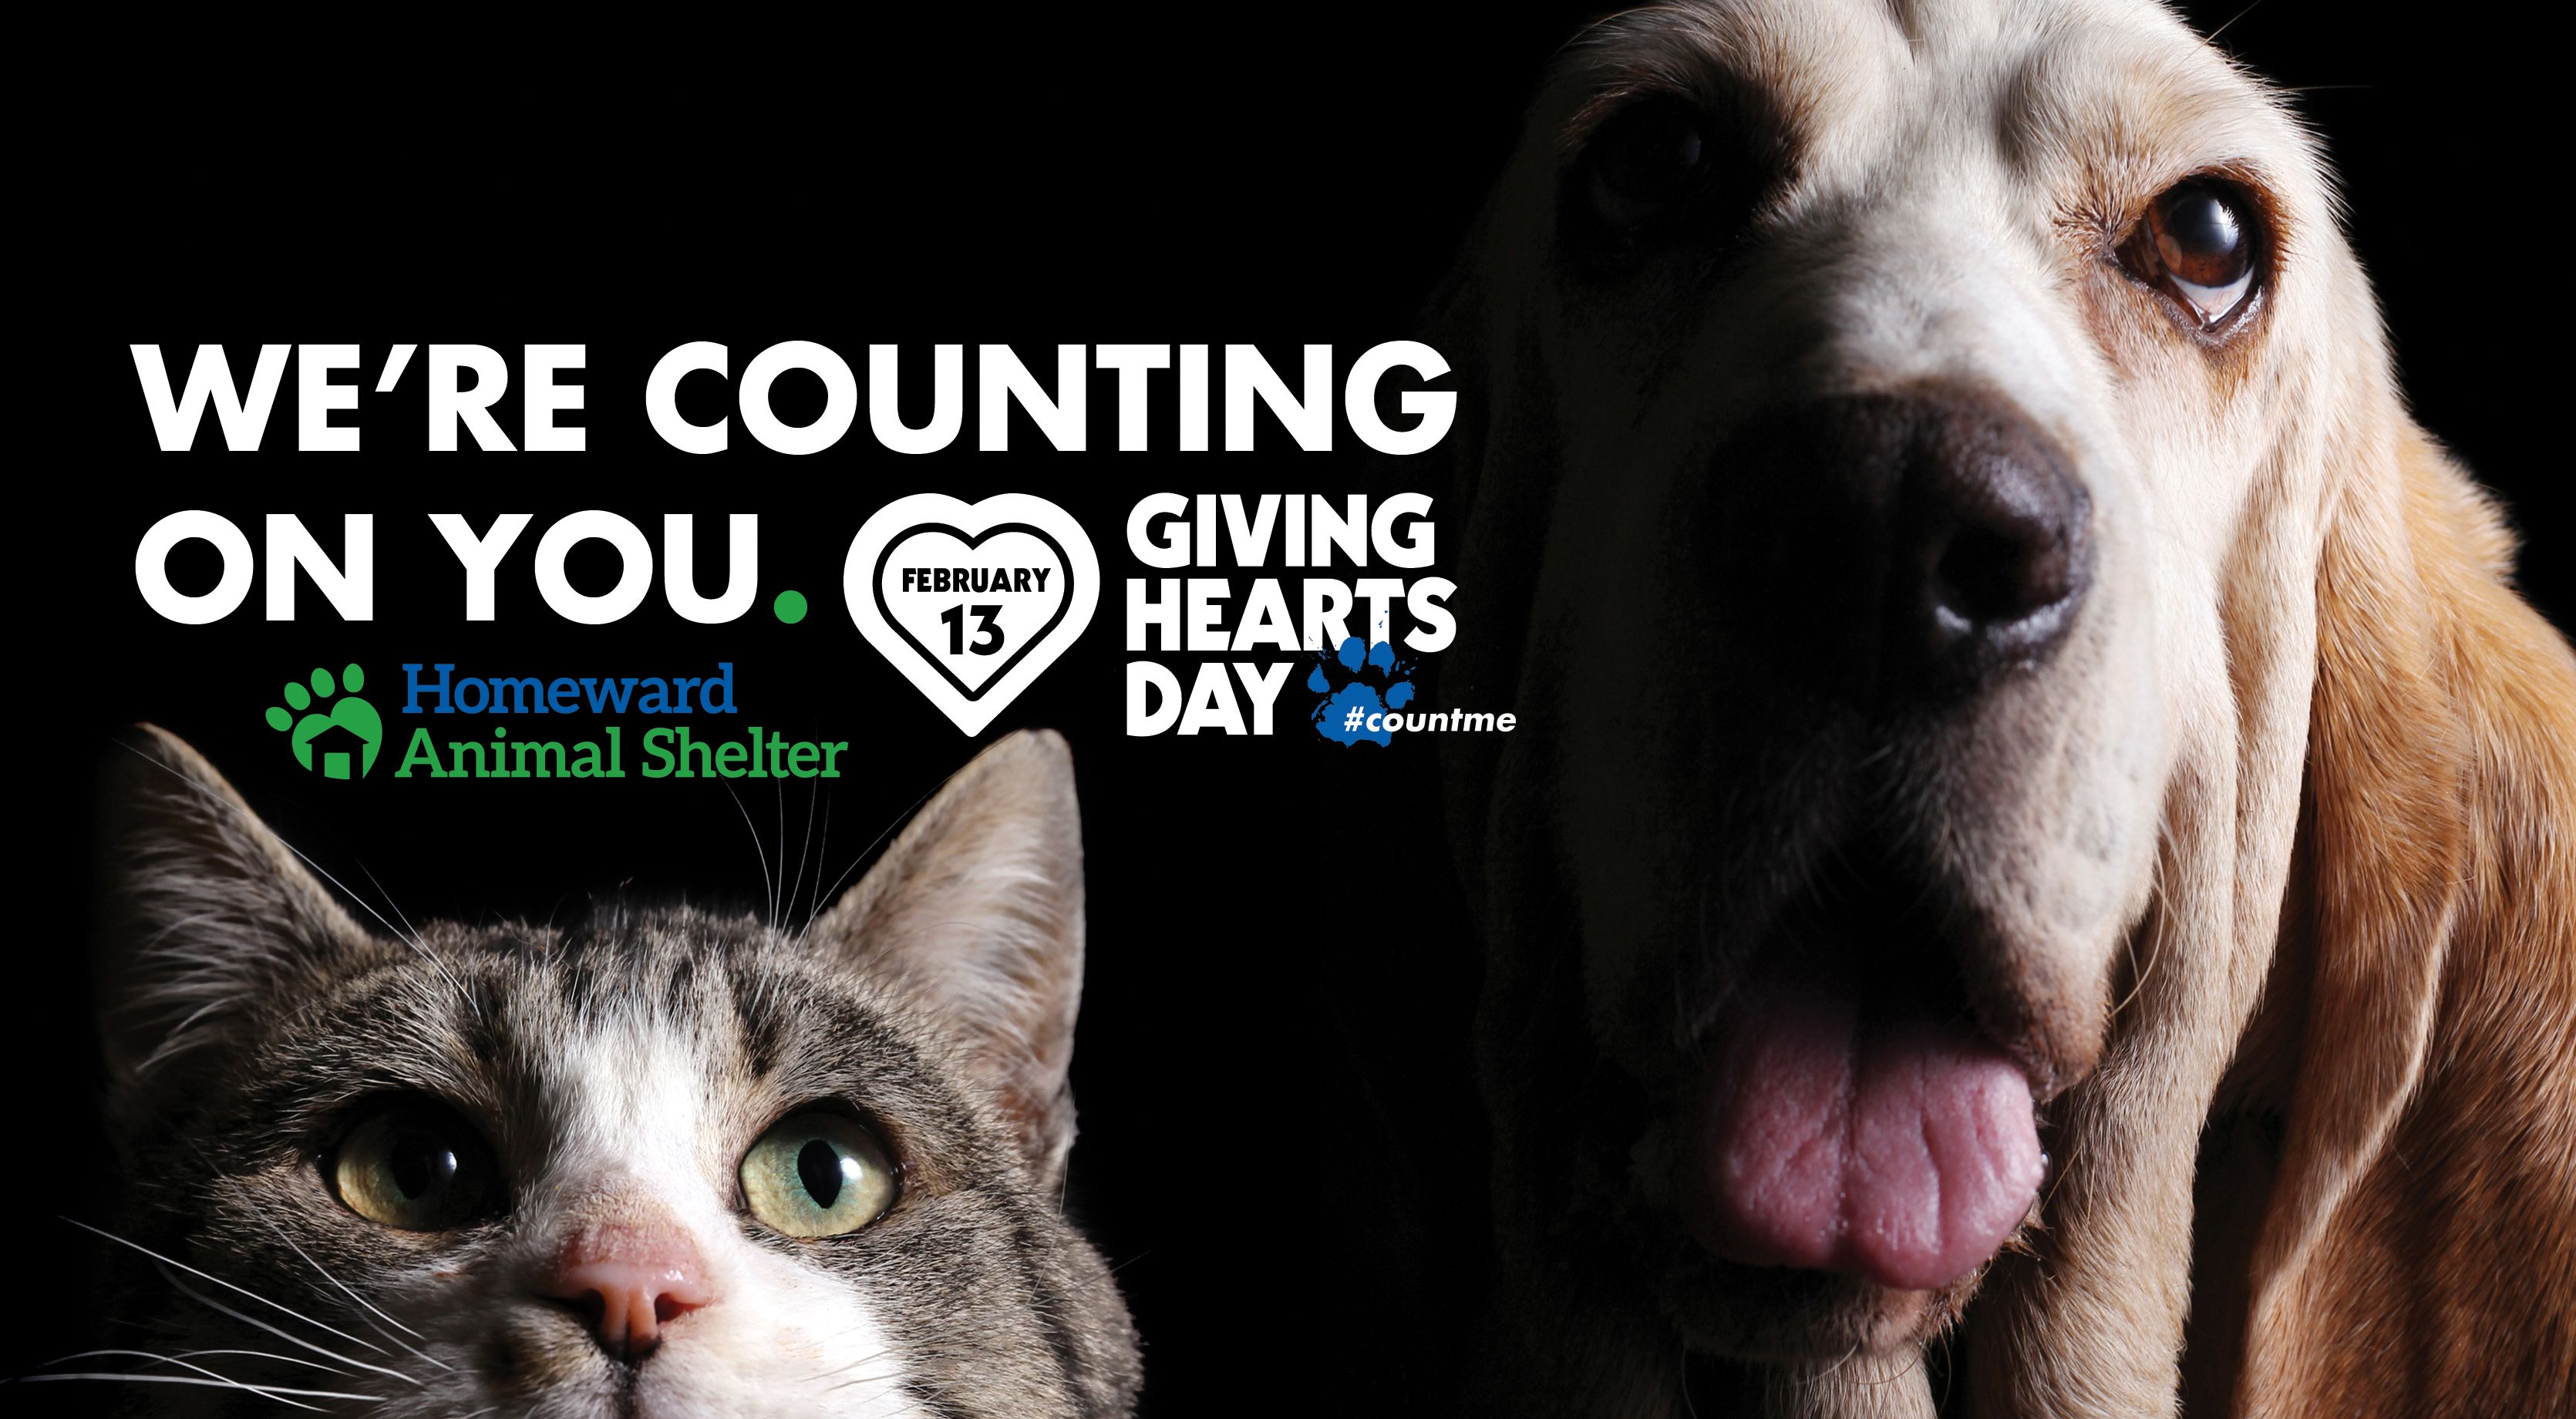 Support shelter pets on Giving Hearts Day.